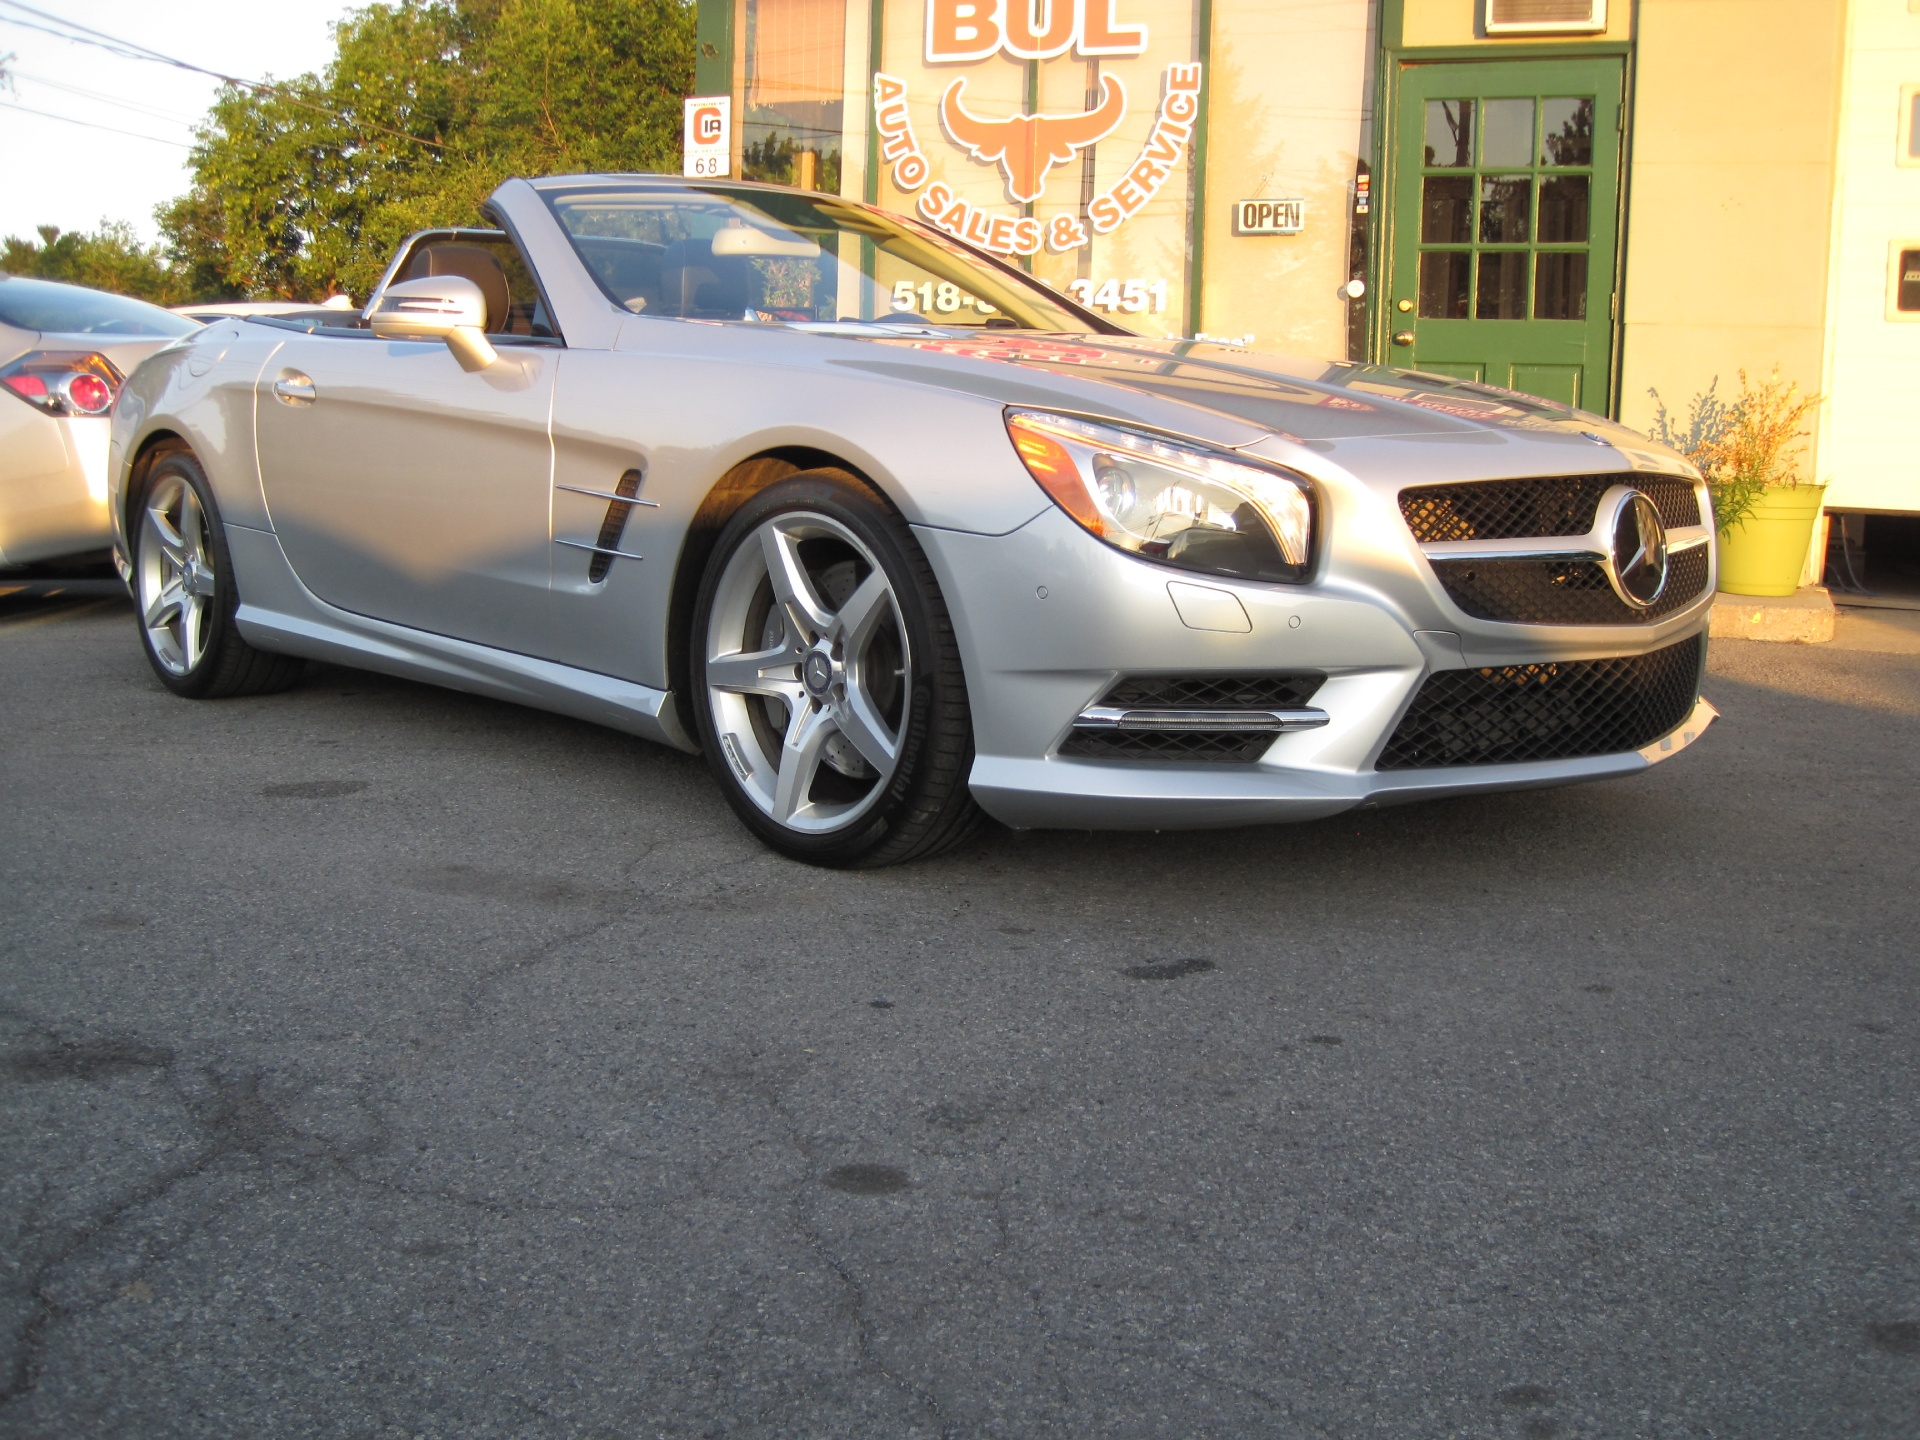 2013 mercedes benz sl class sl550 loaded msrp was 119000 pano roof stock 15105 for sale near. Black Bedroom Furniture Sets. Home Design Ideas